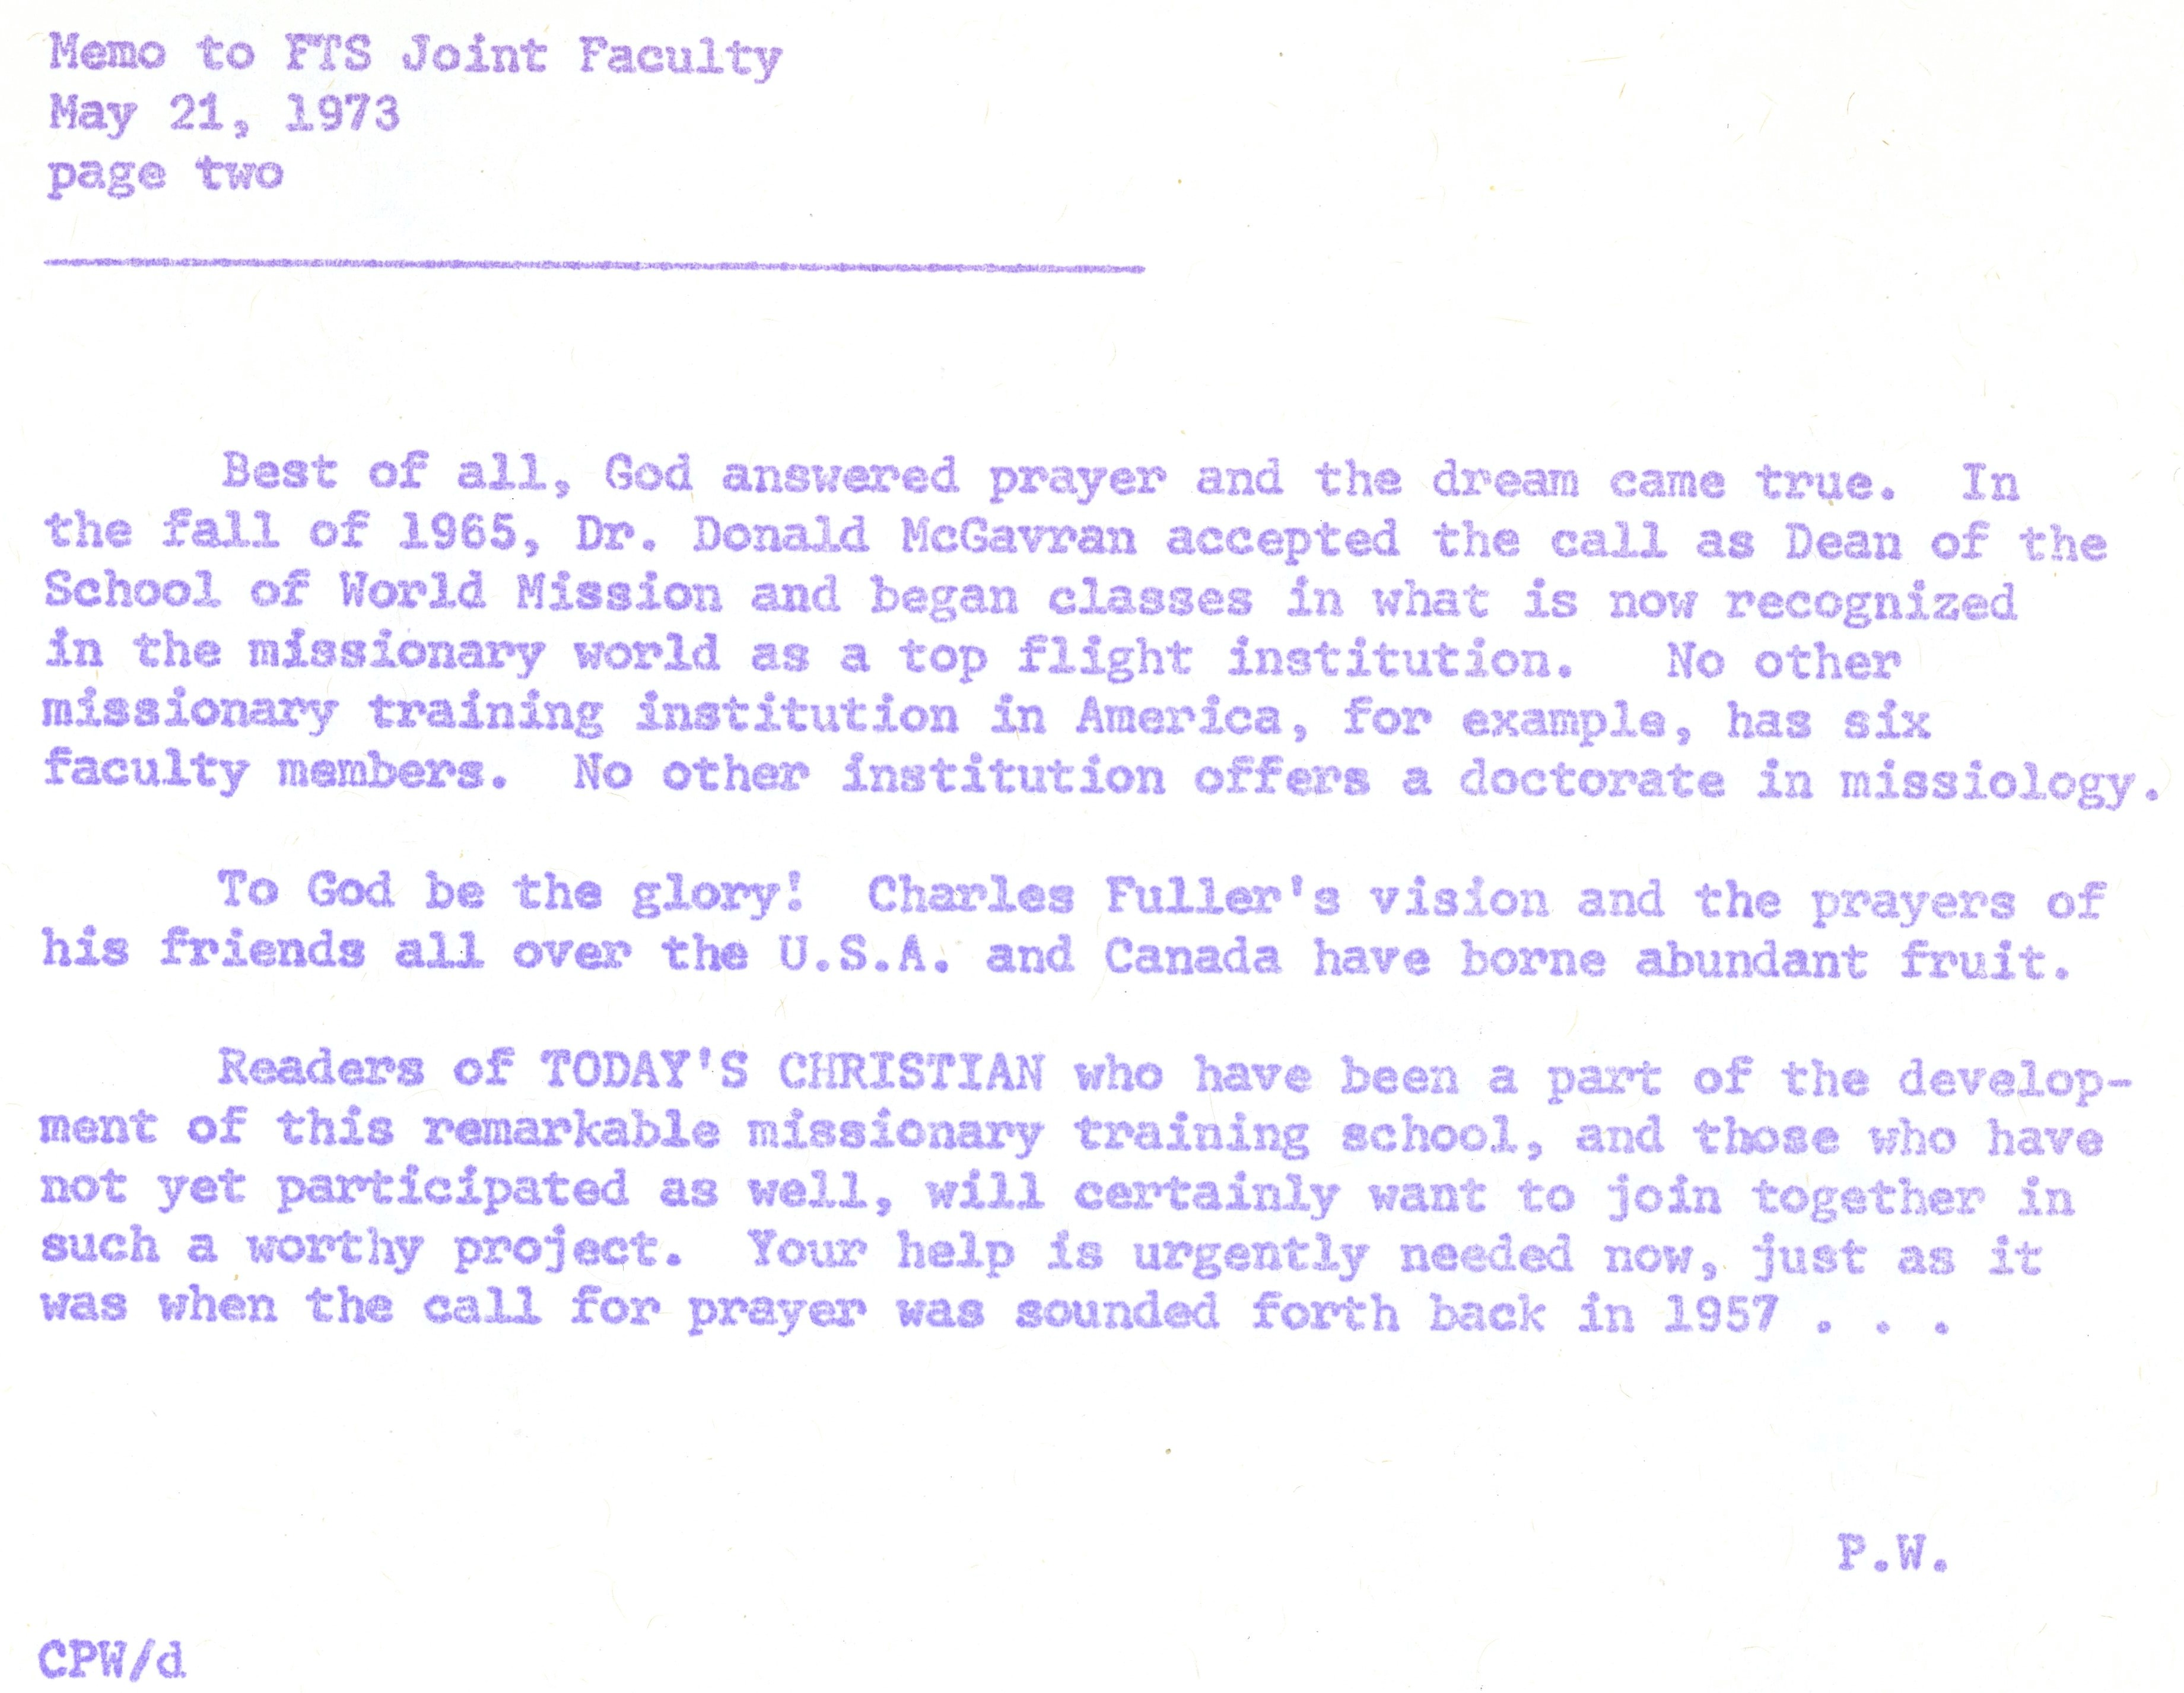 Wagner to Joint Faculty Memo 5 21 1973 p2